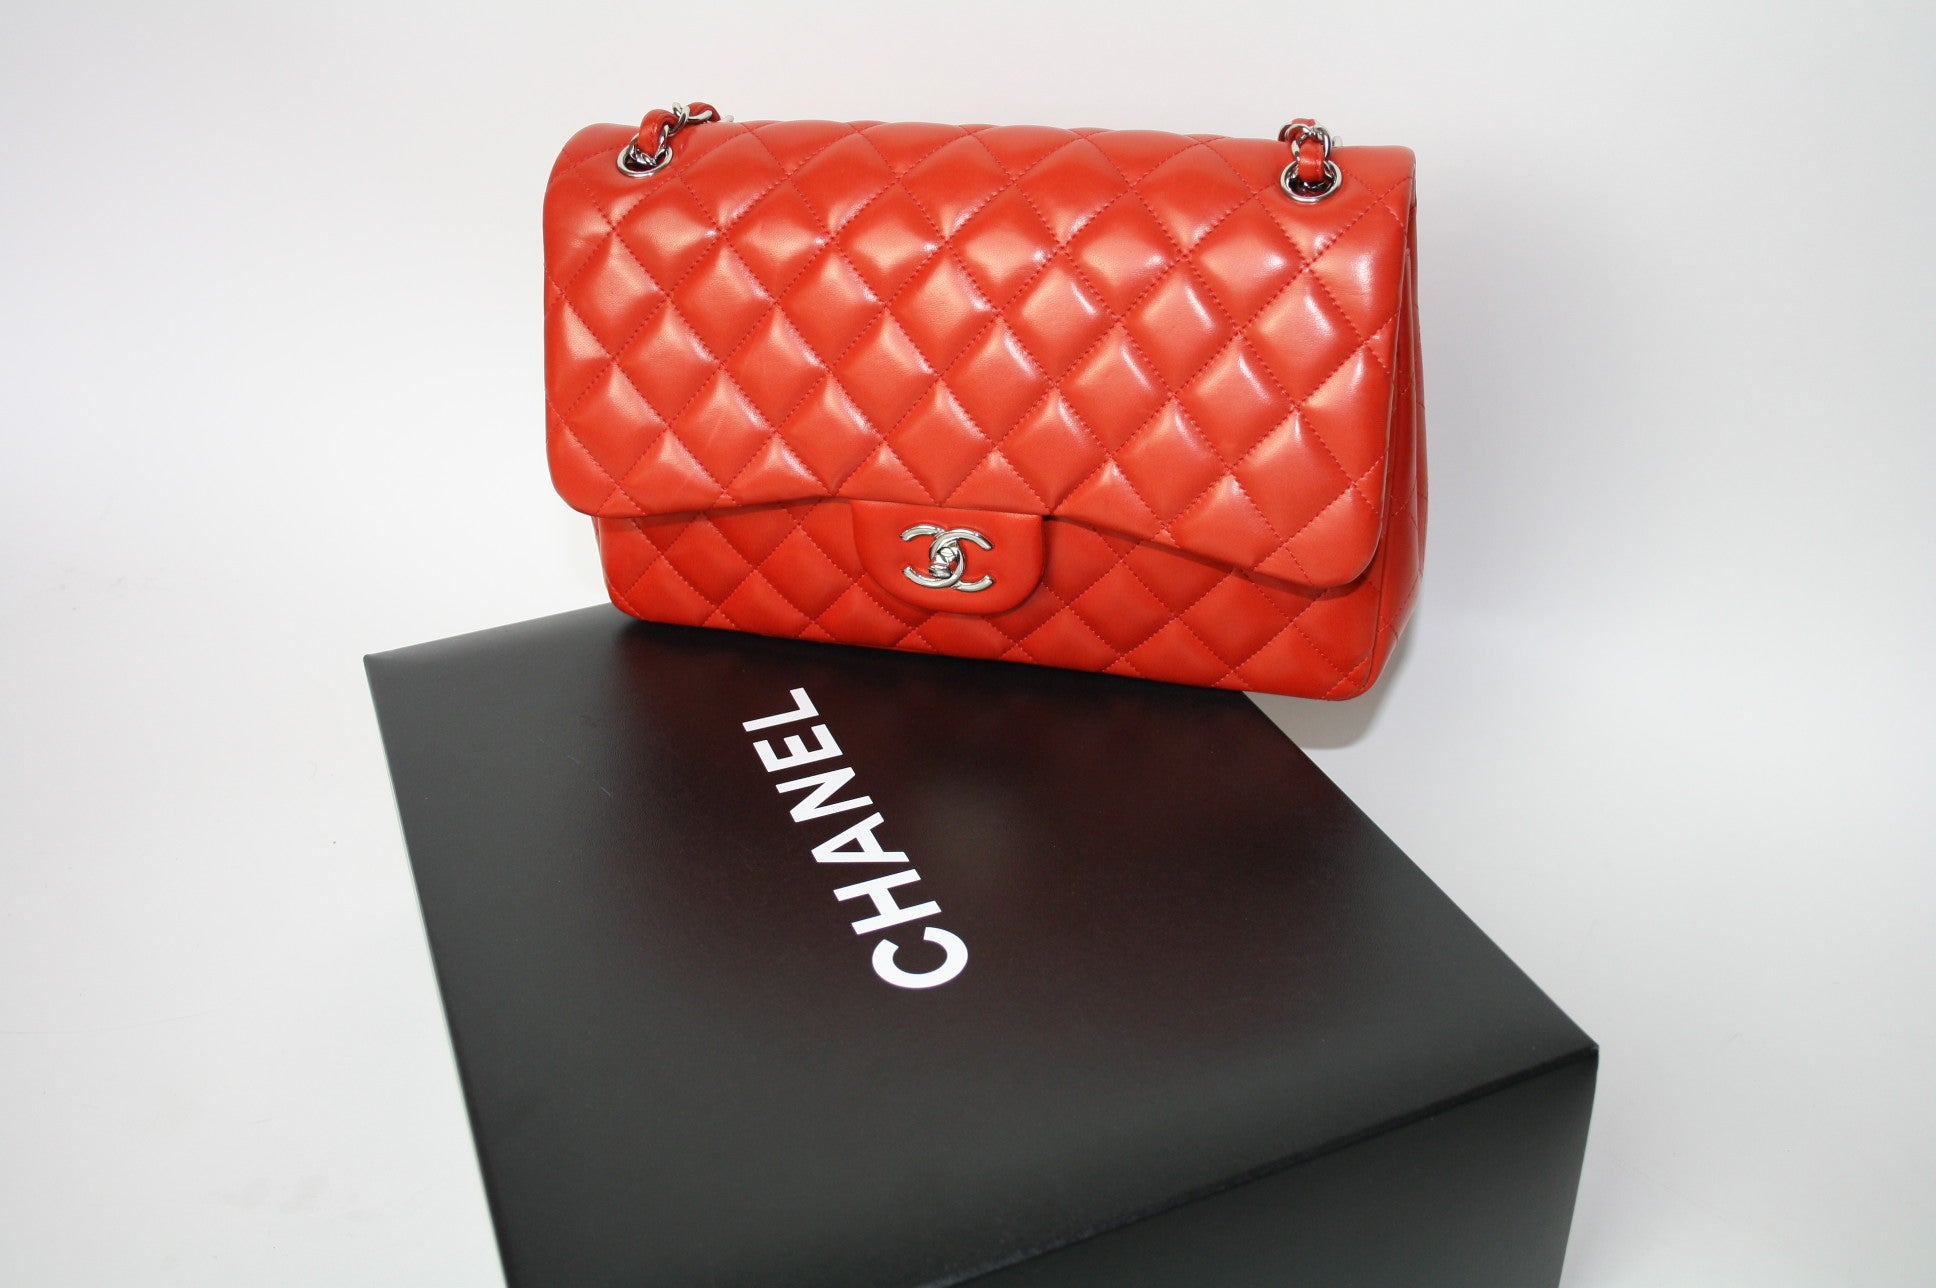 Chanel Timeless Large bag - Iconics Preloved Luxury